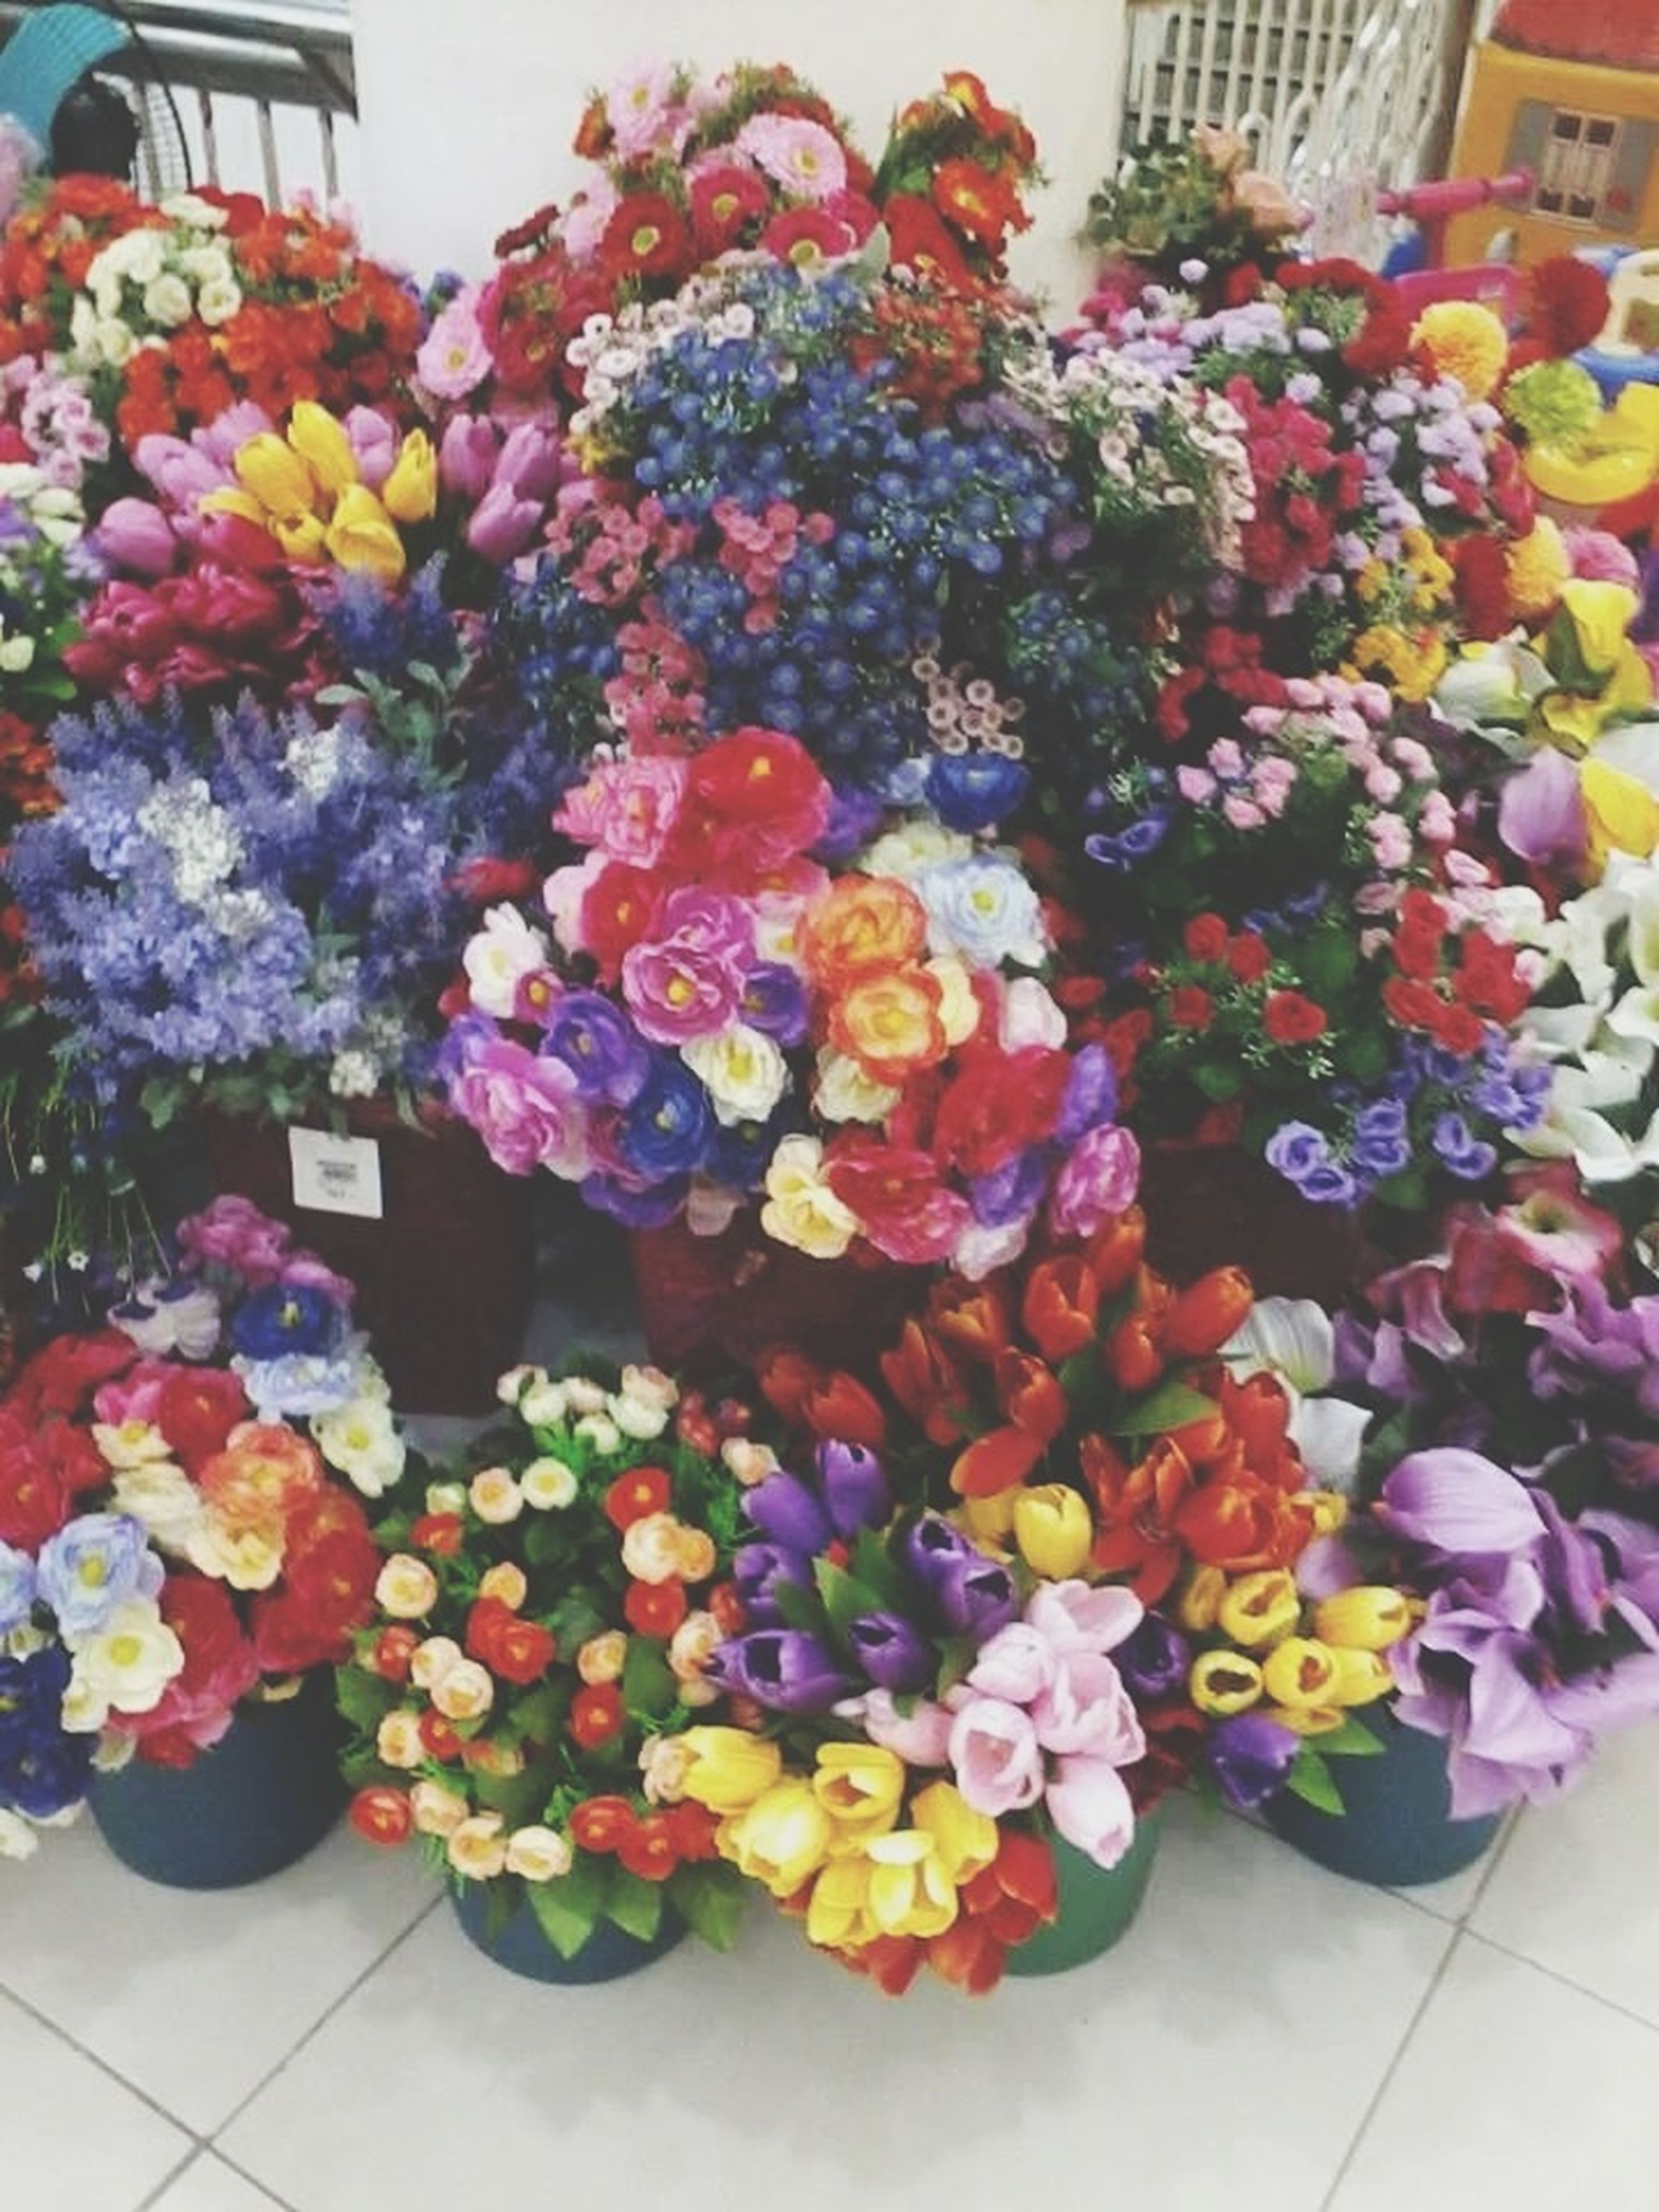 flower, freshness, variation, abundance, multi colored, for sale, choice, retail, large group of objects, arrangement, indoors, bouquet, market, fragility, collection, high angle view, market stall, decoration, various, bunch of flowers